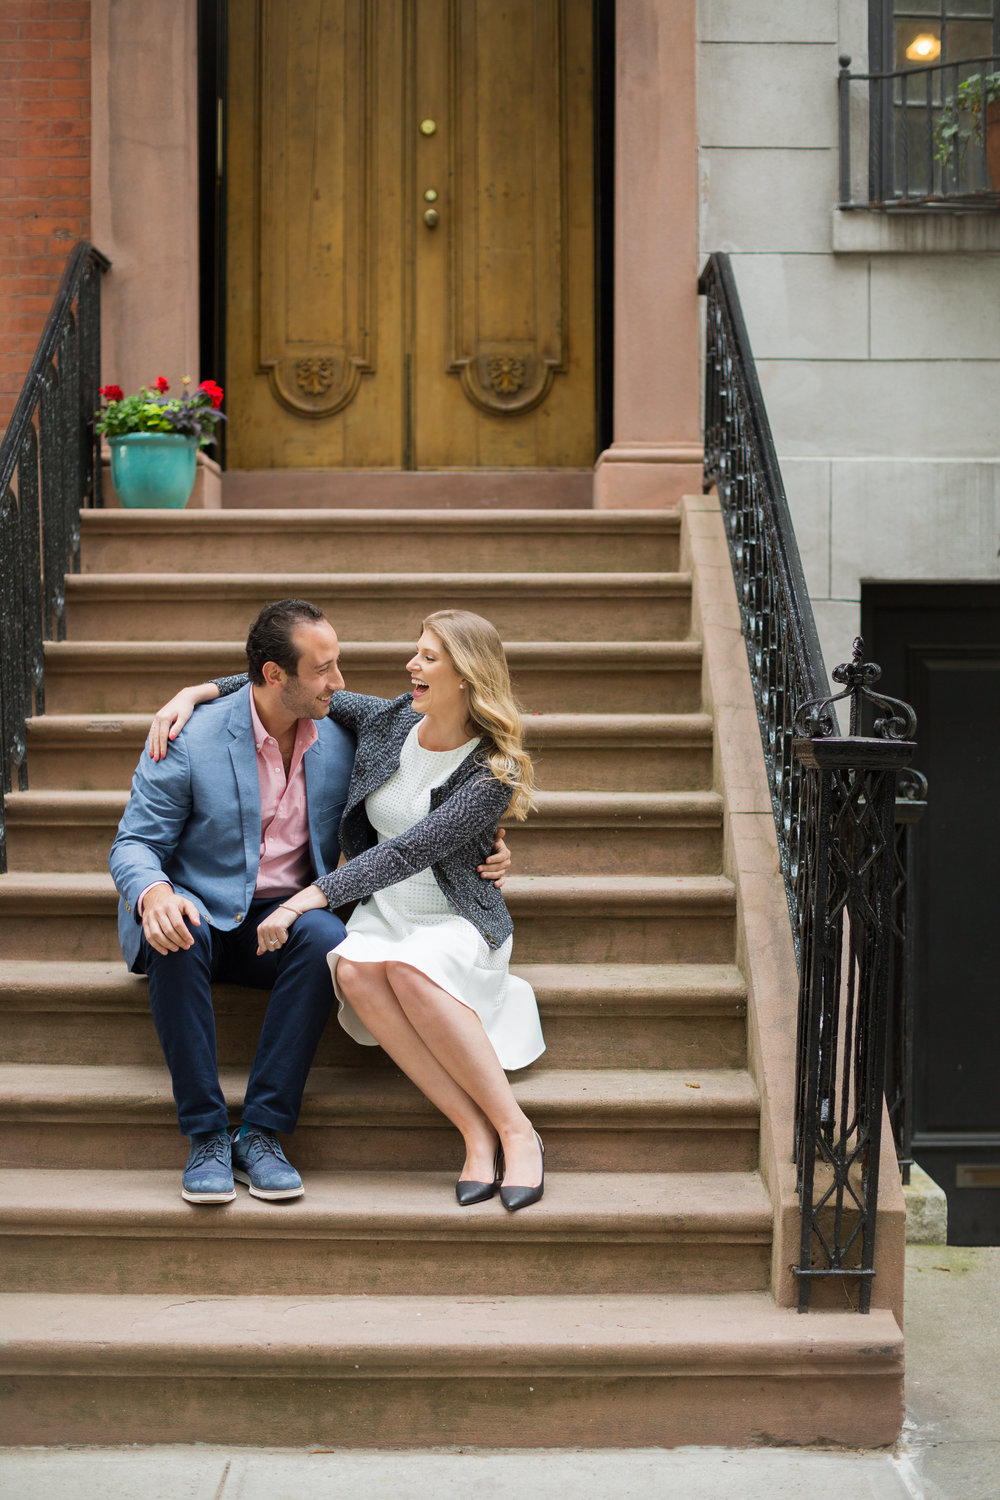 Melissa Kruse Photography - Courtney & JP Gramercy NYC Engagement Photos-113.jpg